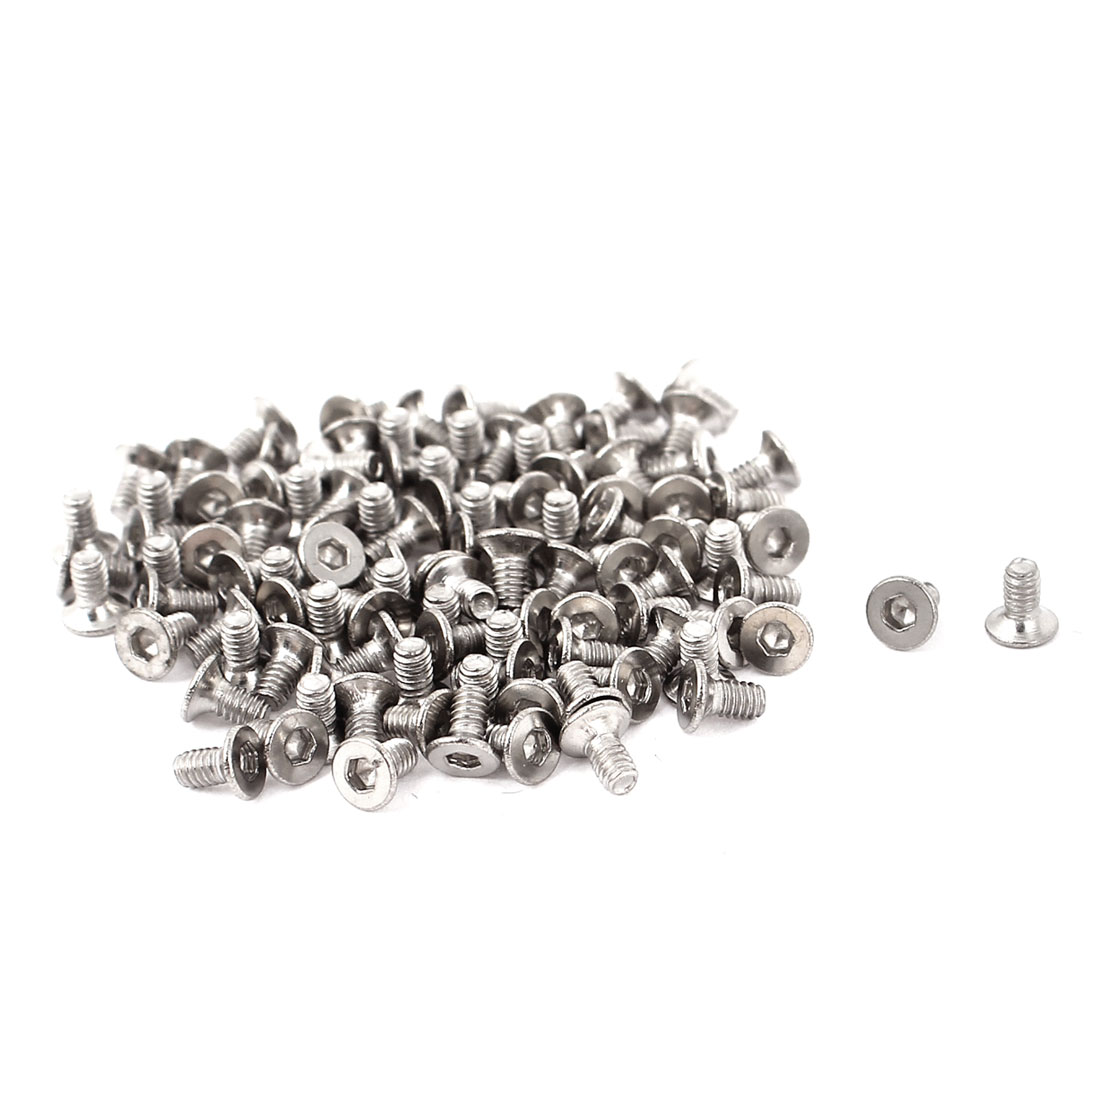 100pcs Metric M2 Stainless Steel Countersunk Flat Head Hex Socket Cap Screw Bolt